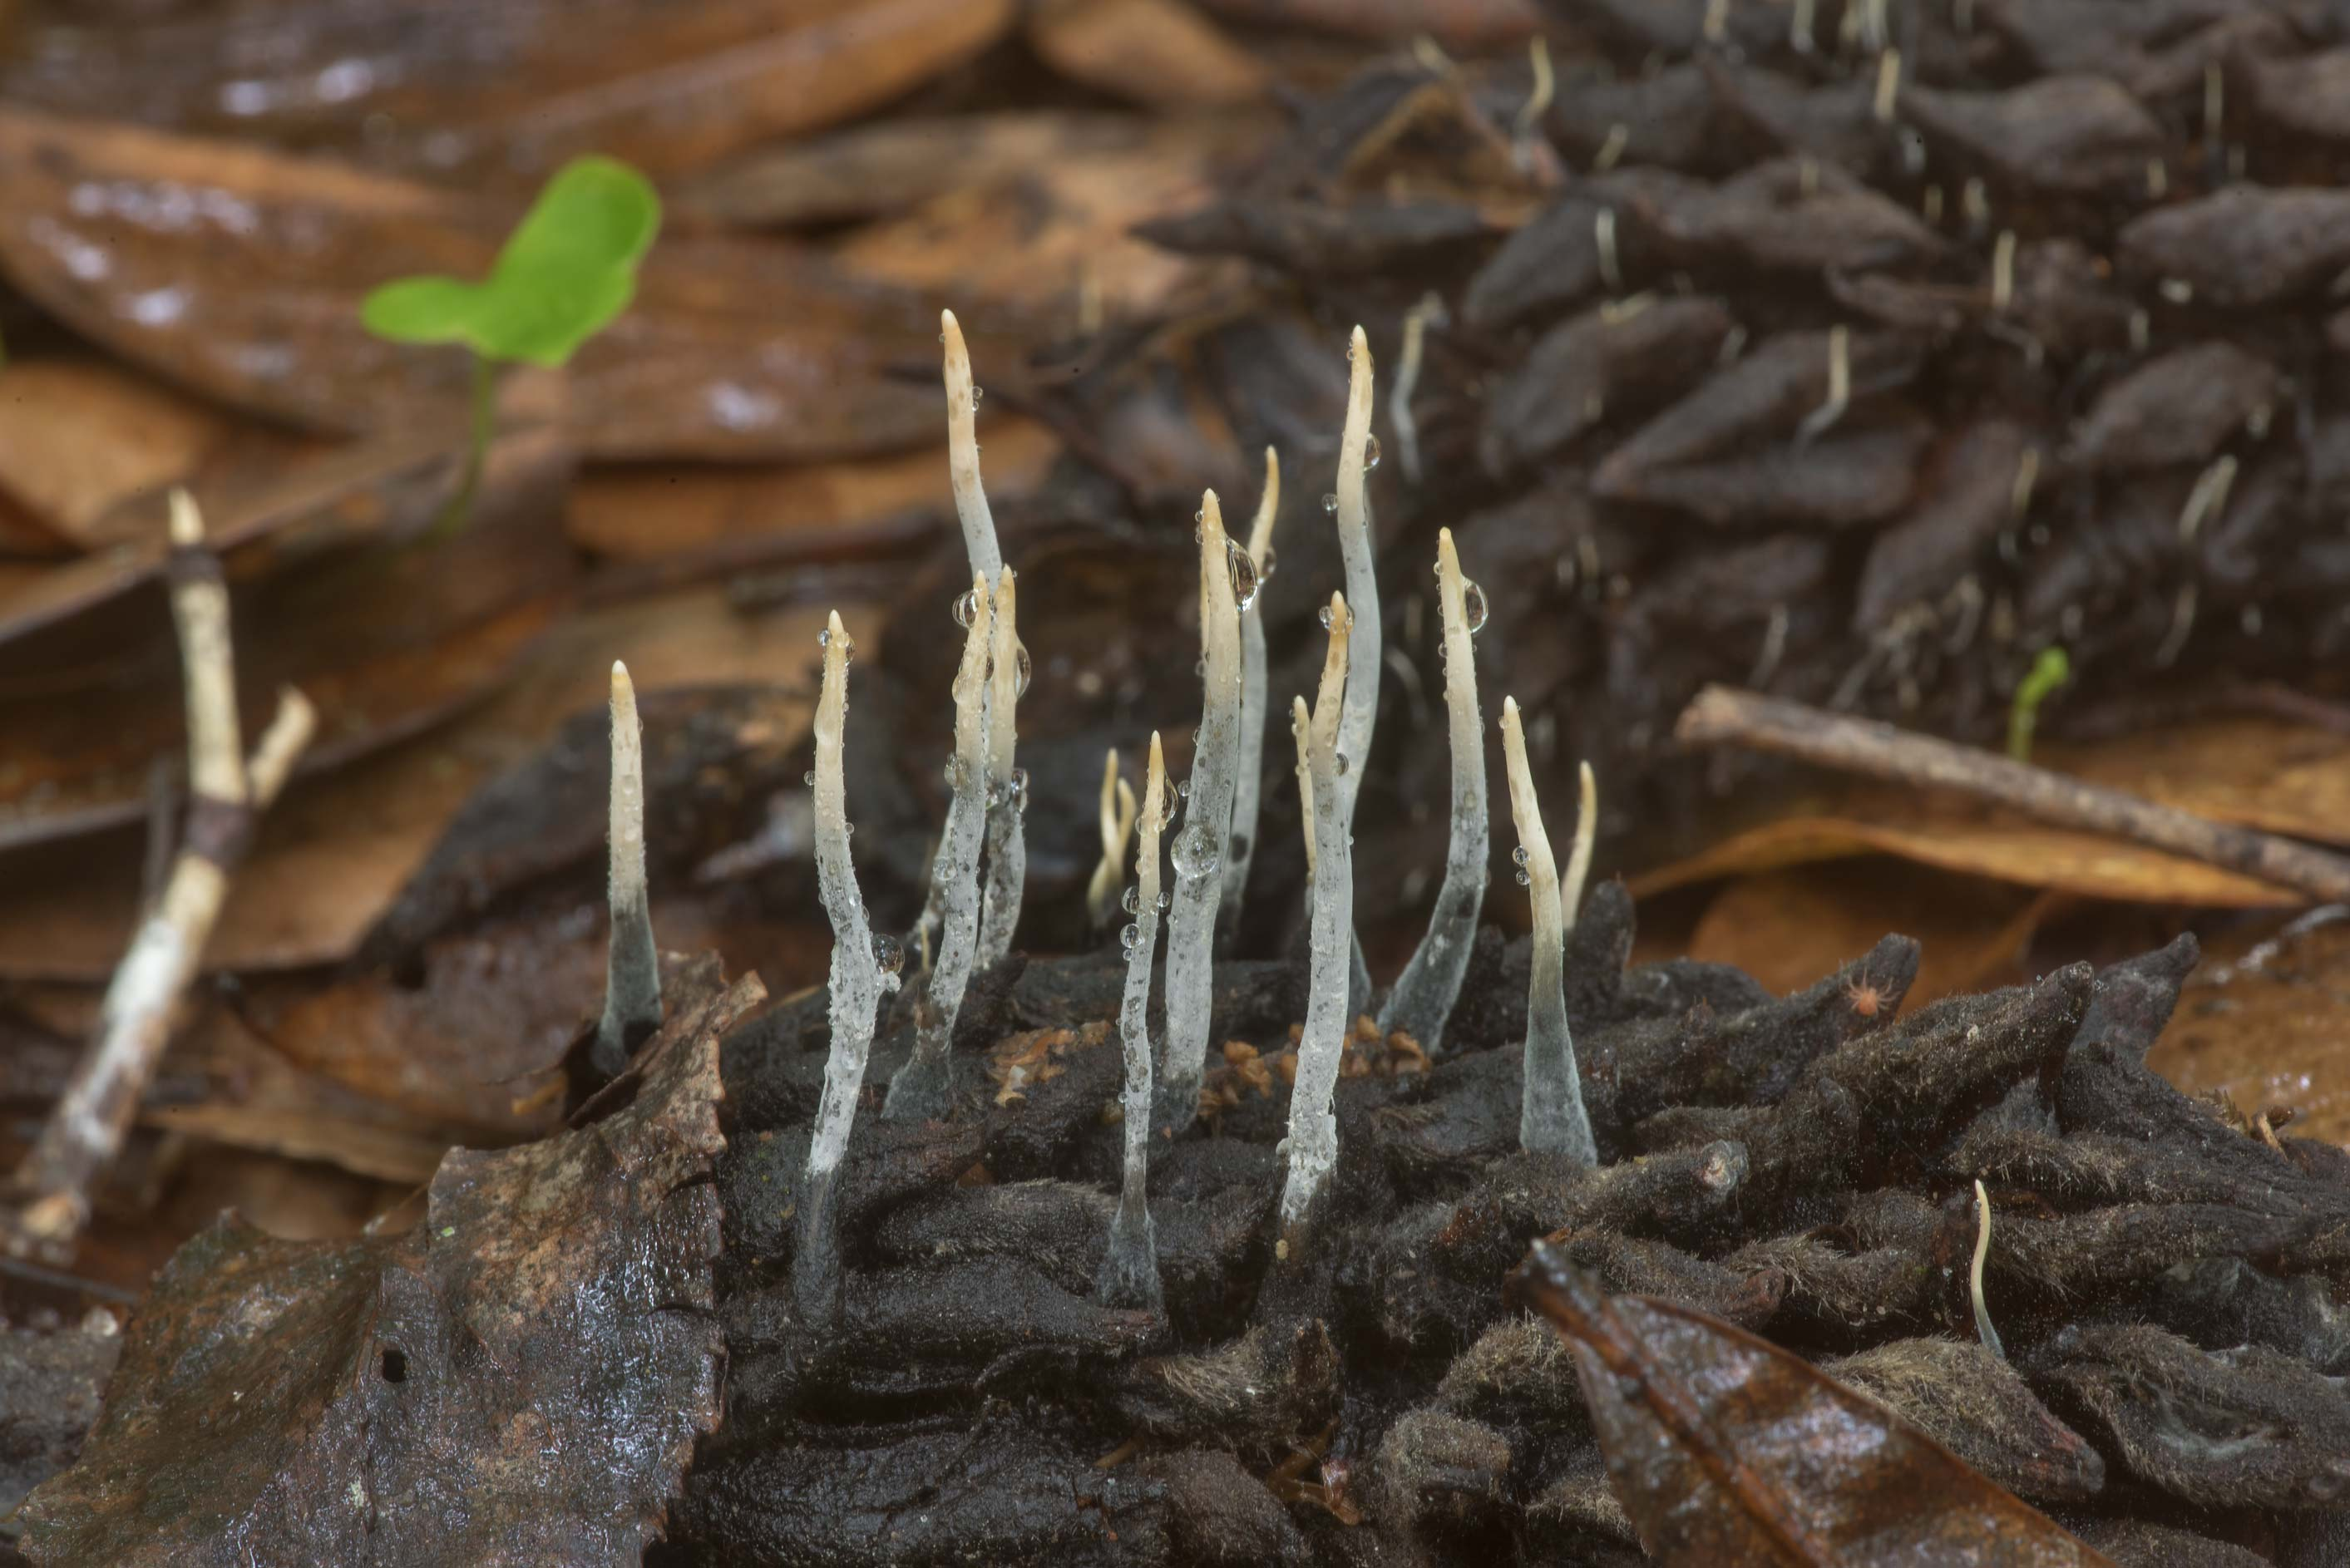 Close-up of mushrooms Xylaria magnoliae on a...National Forest. Cleveland, Texas